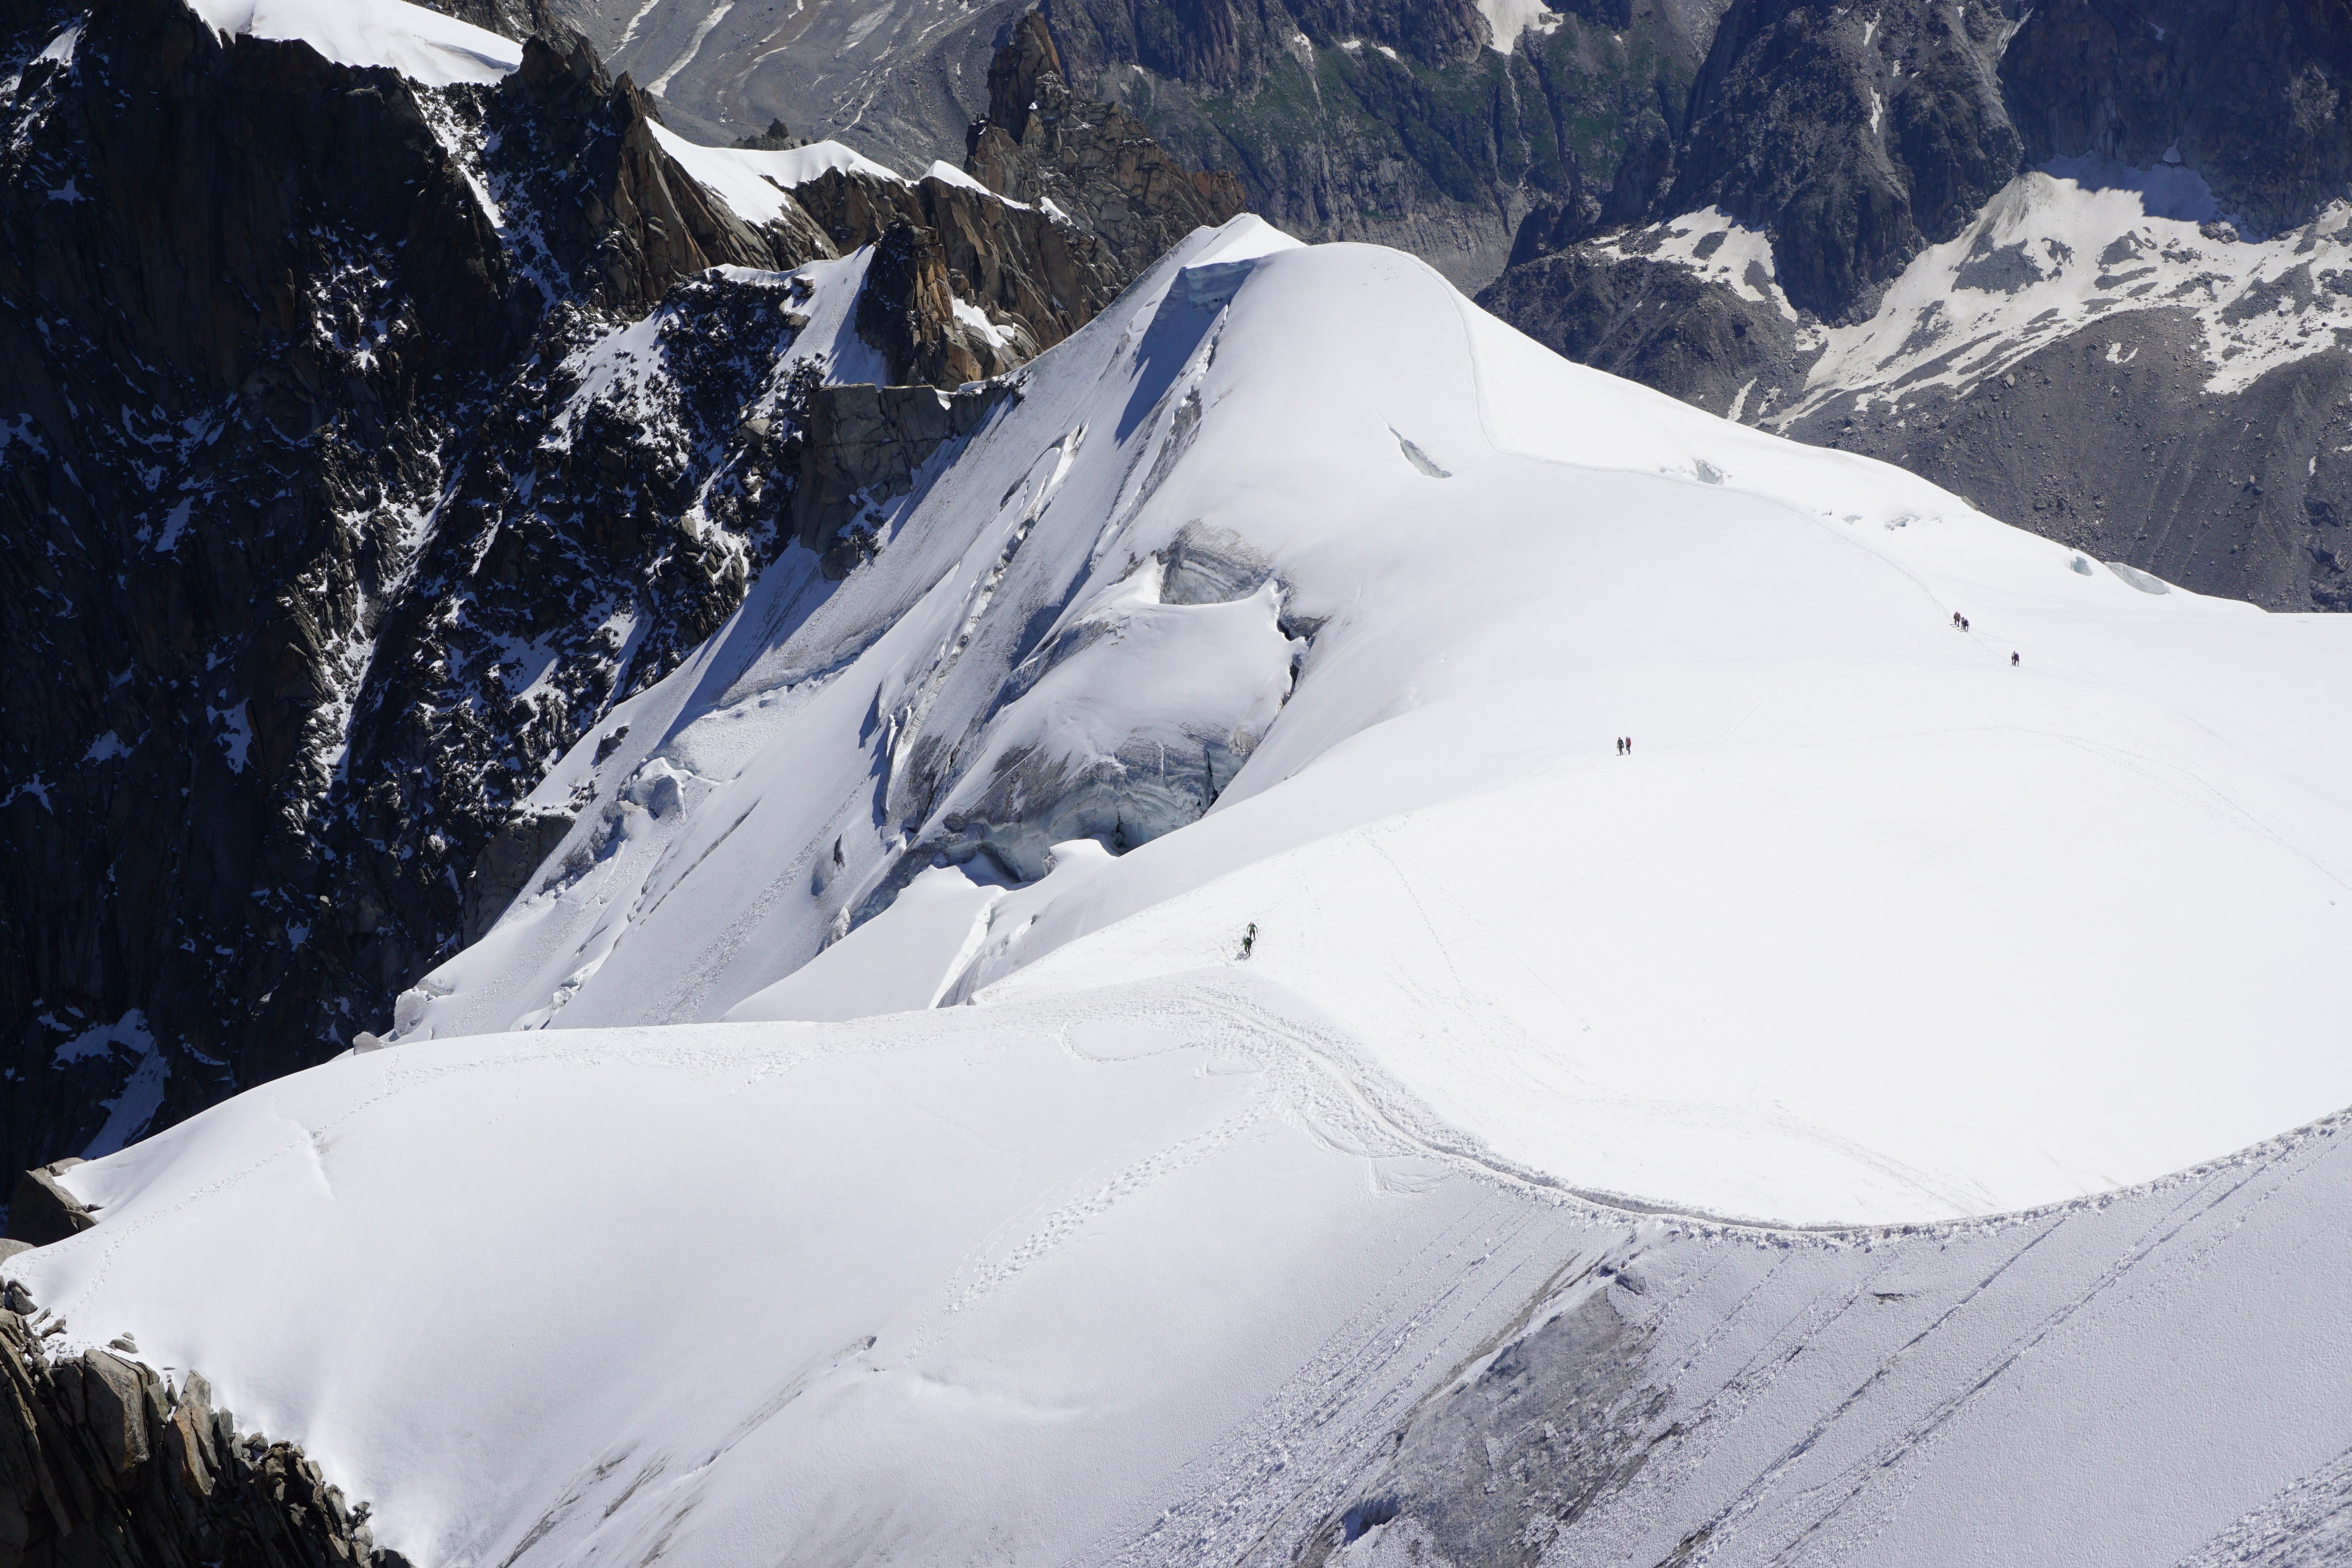 Deep snow covers slopes and cliffs of mountains